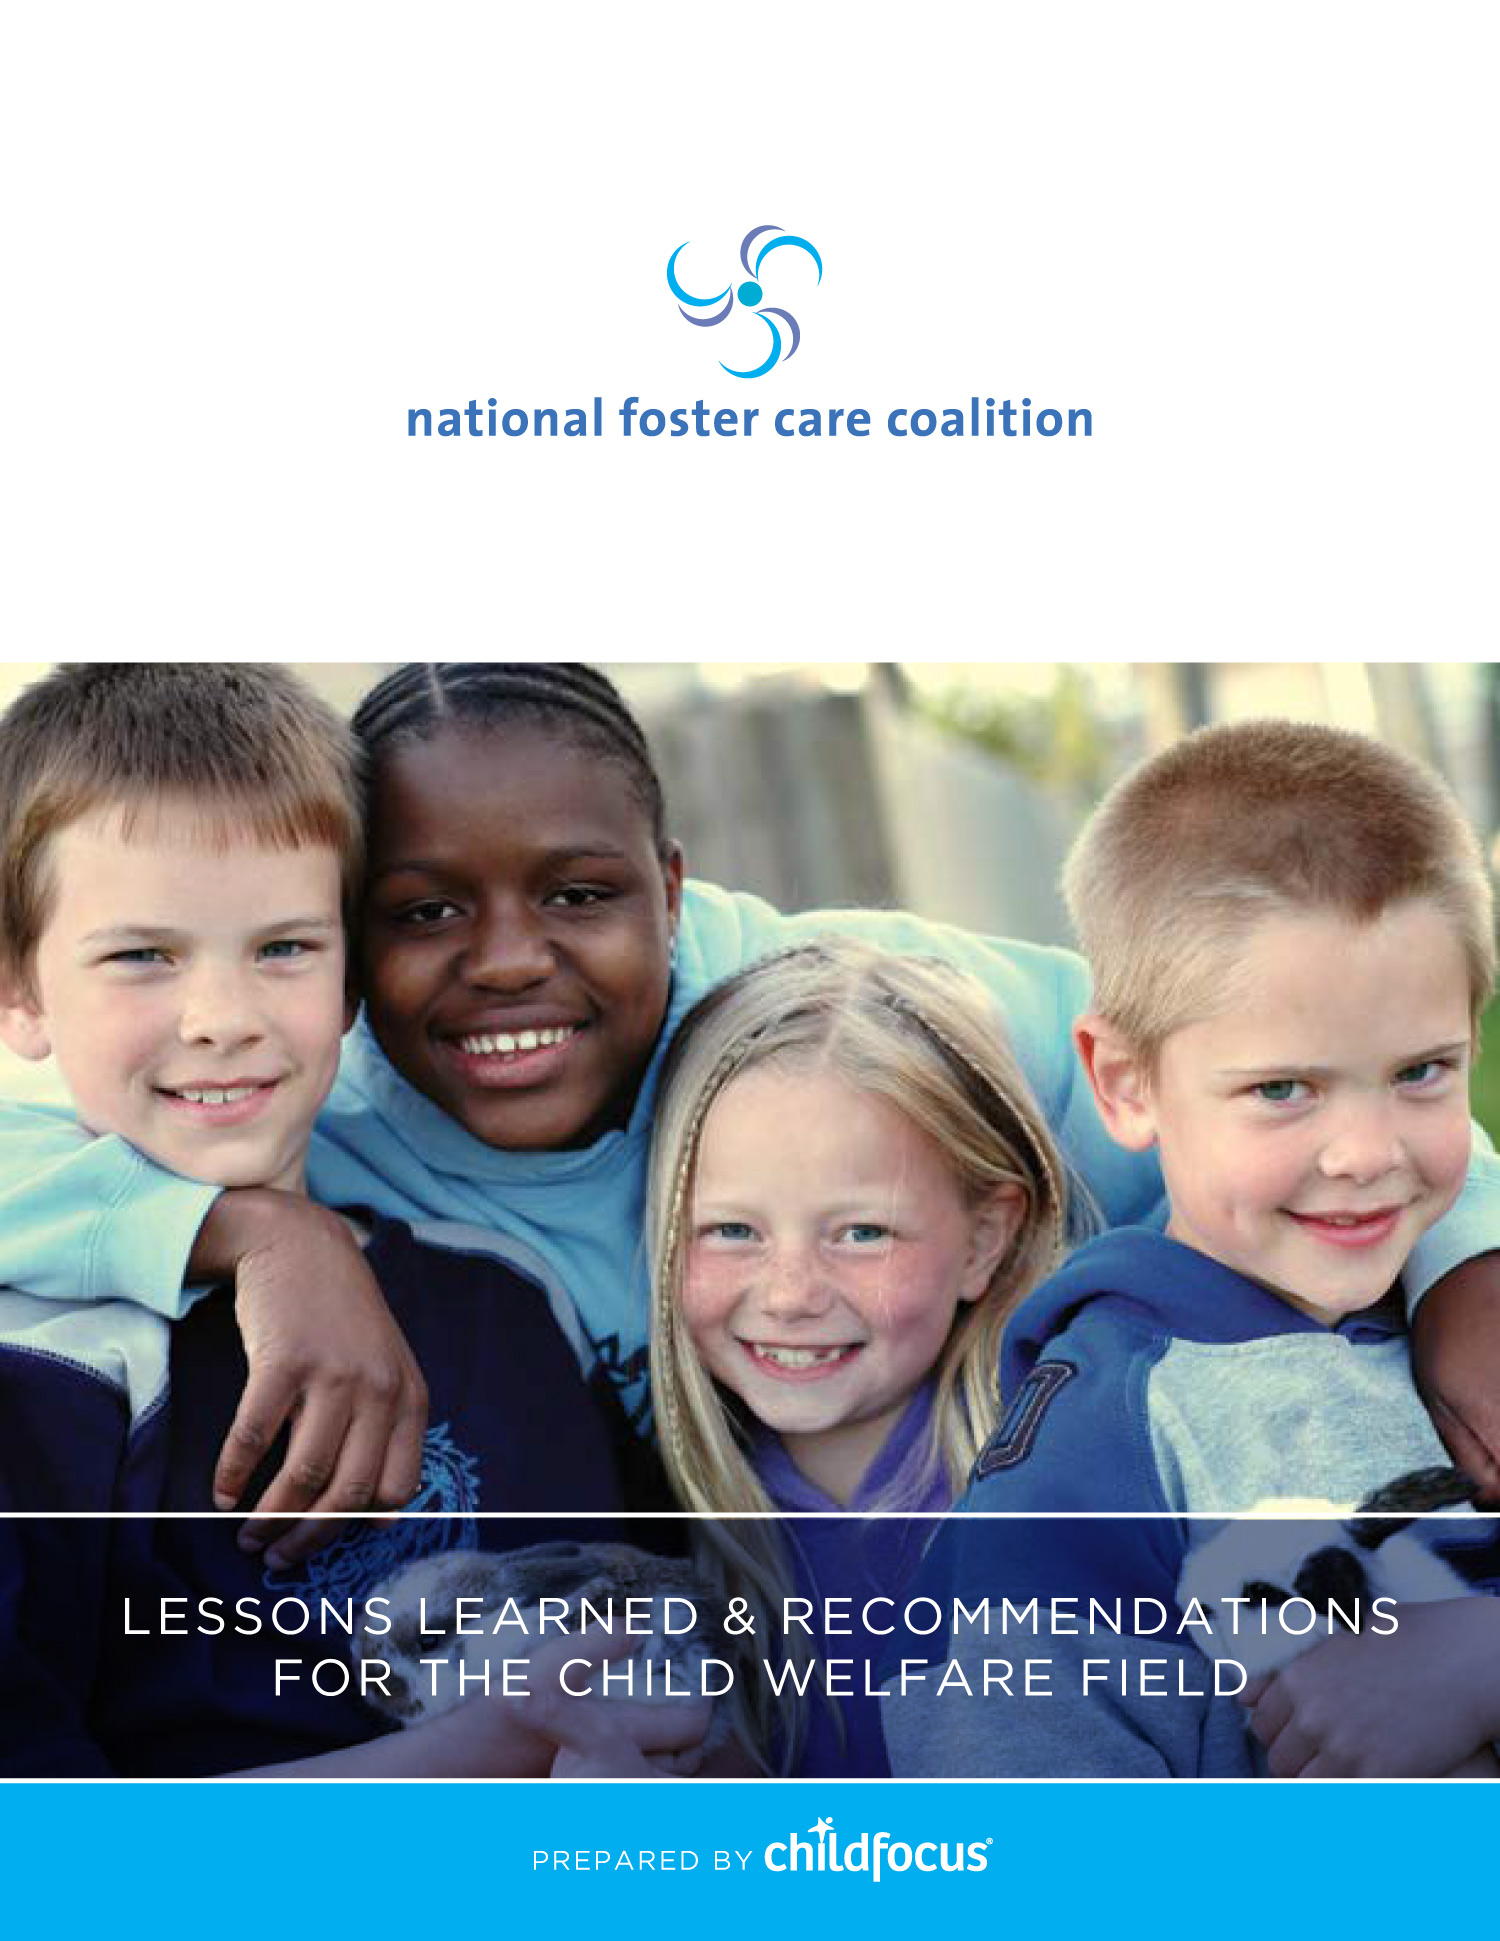 NationalFosterCareCoaltionReport.jpg